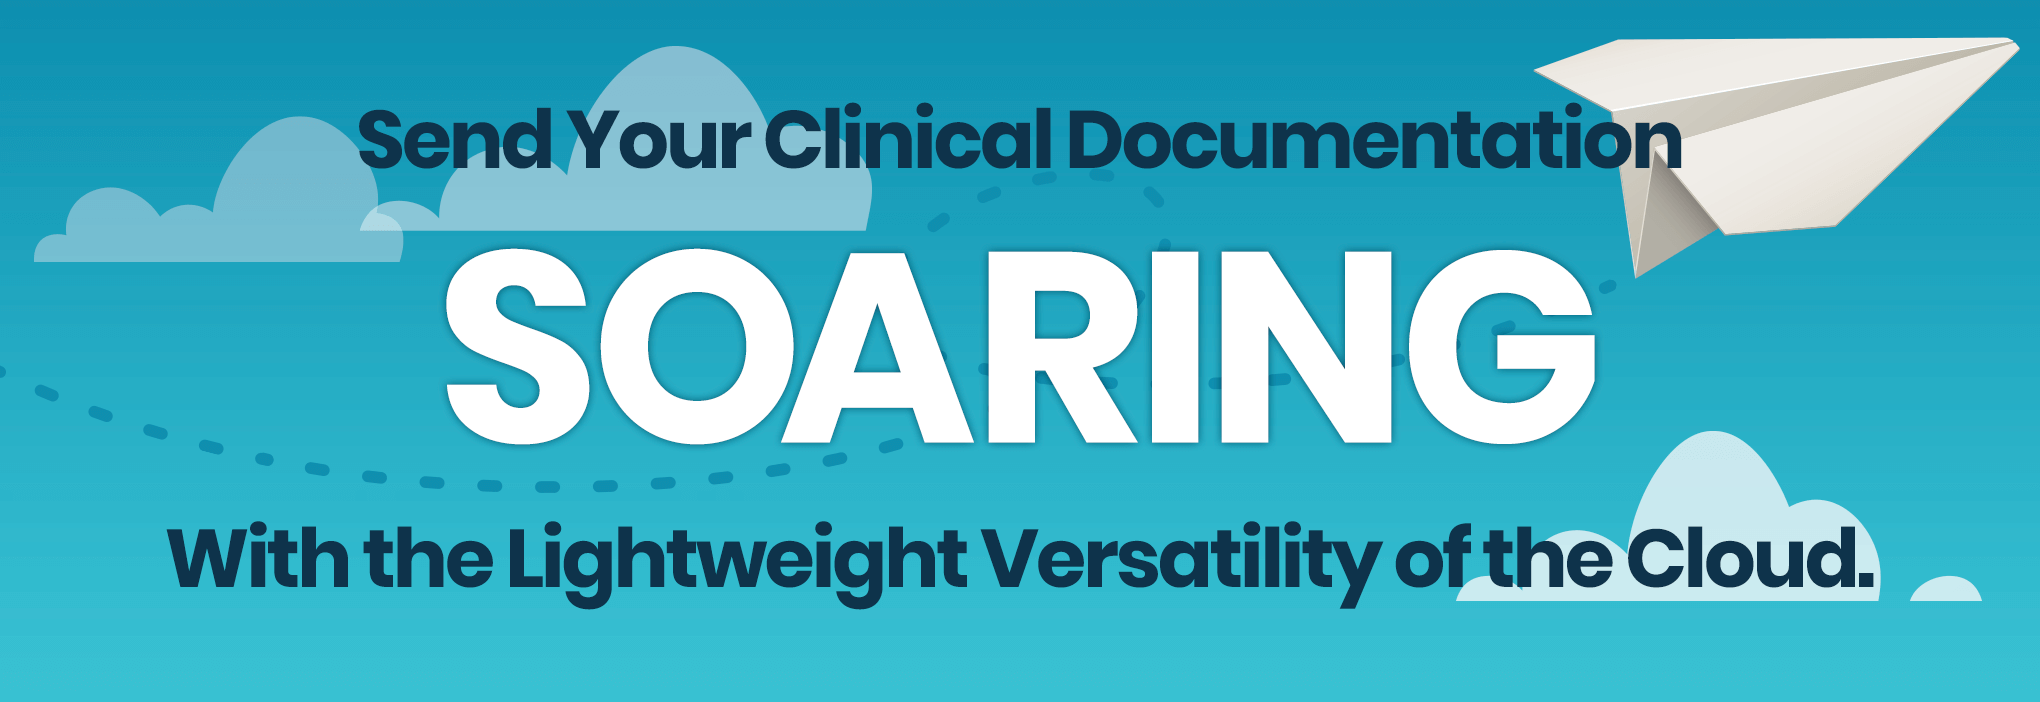 Send Your Clinical Documentation Soaring with Dragon Medical One